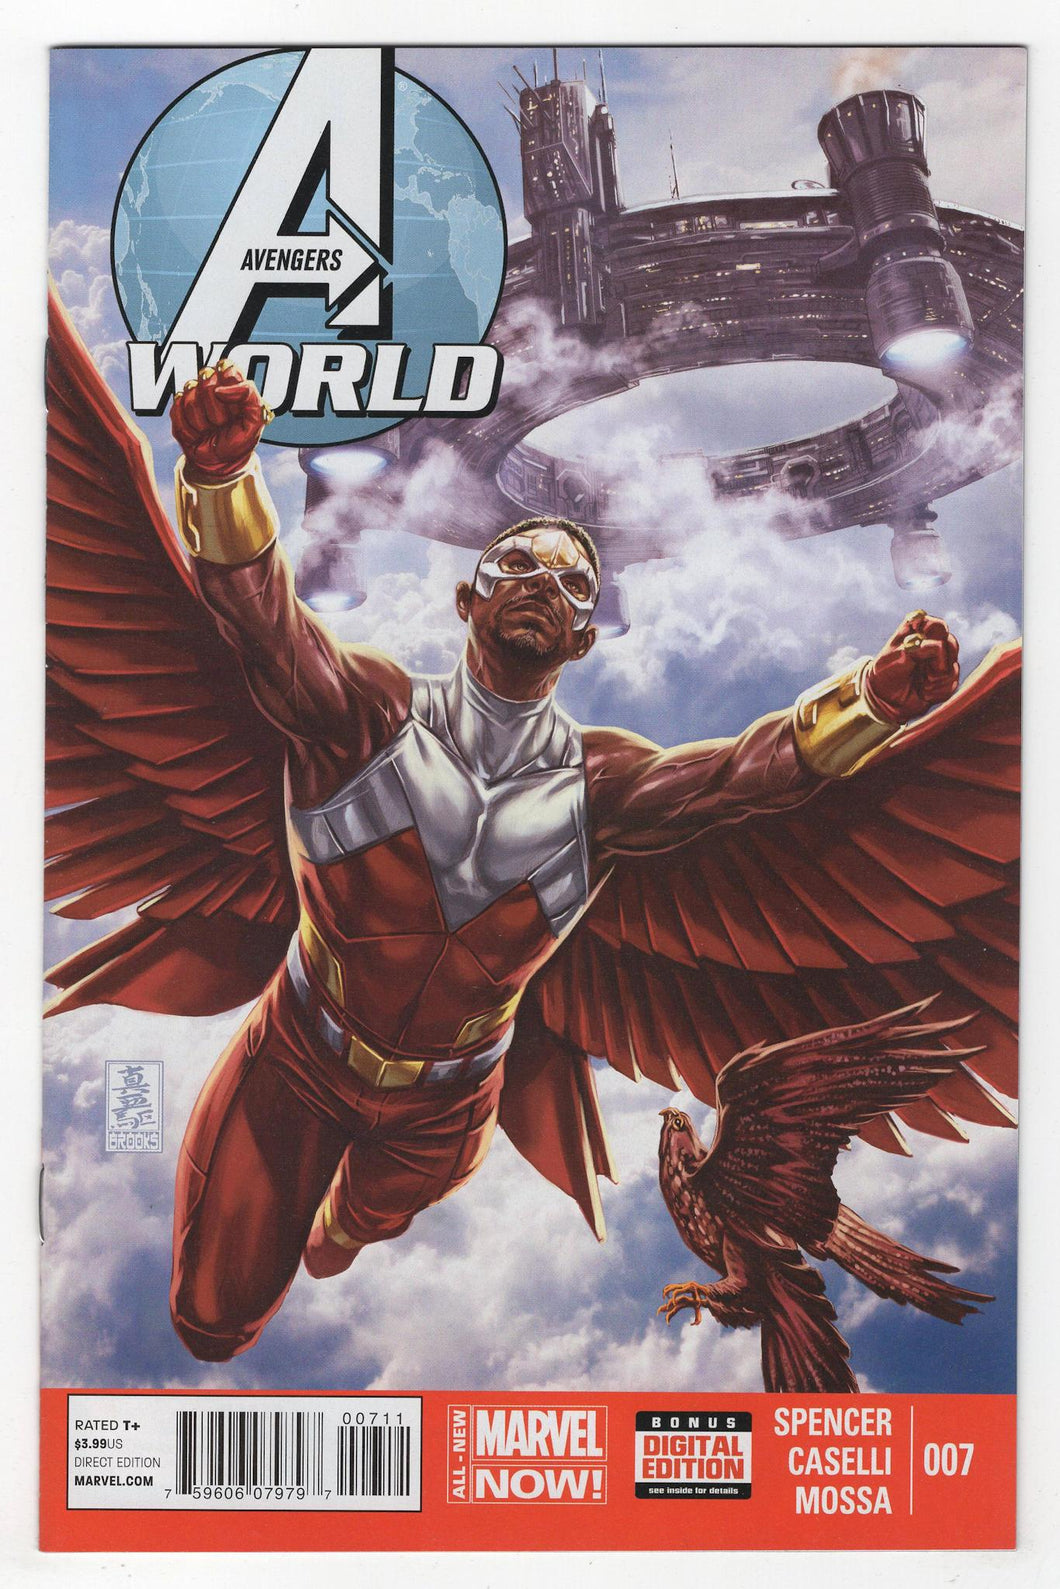 Avengers World #7 Cover Front